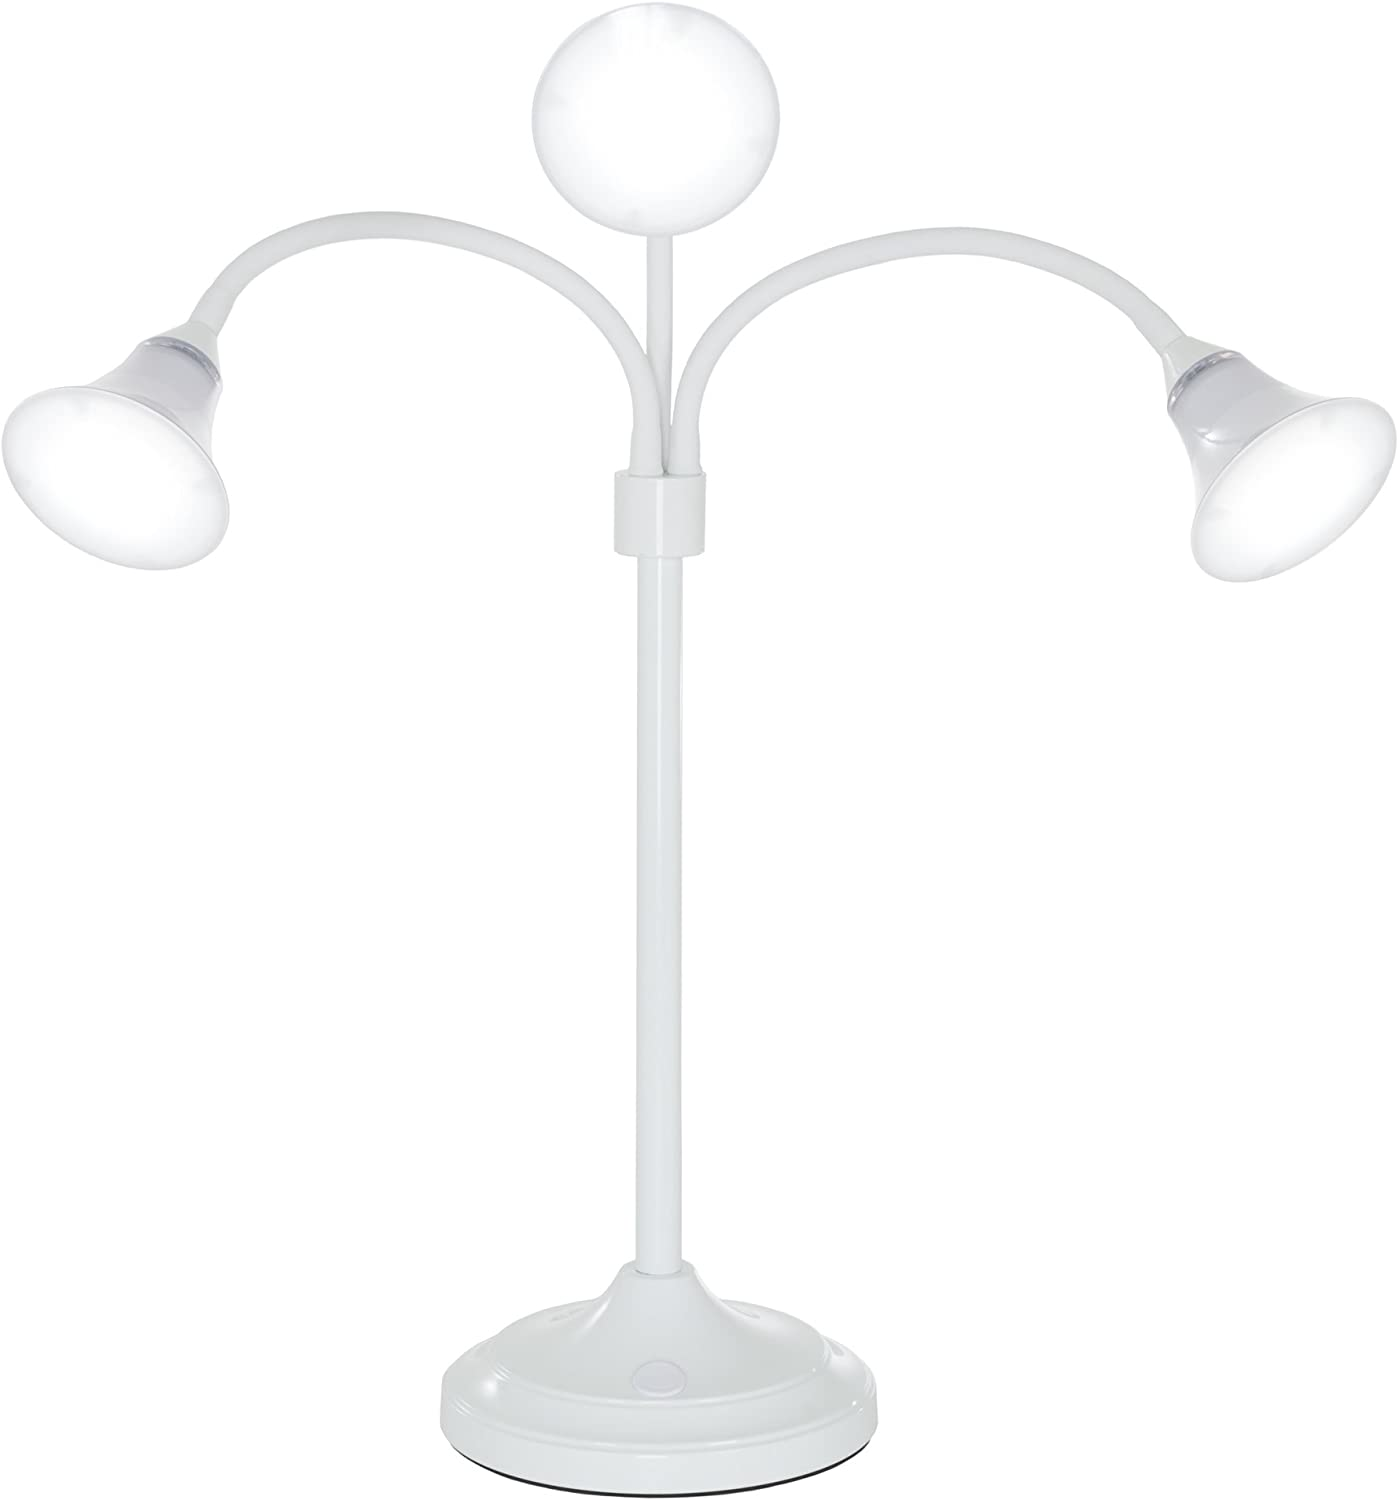 Lavish Home 72-4000W 3 Head Desk Lamp, LED Light with Adjustable Arms, Touch Switch and Dimmer (White)